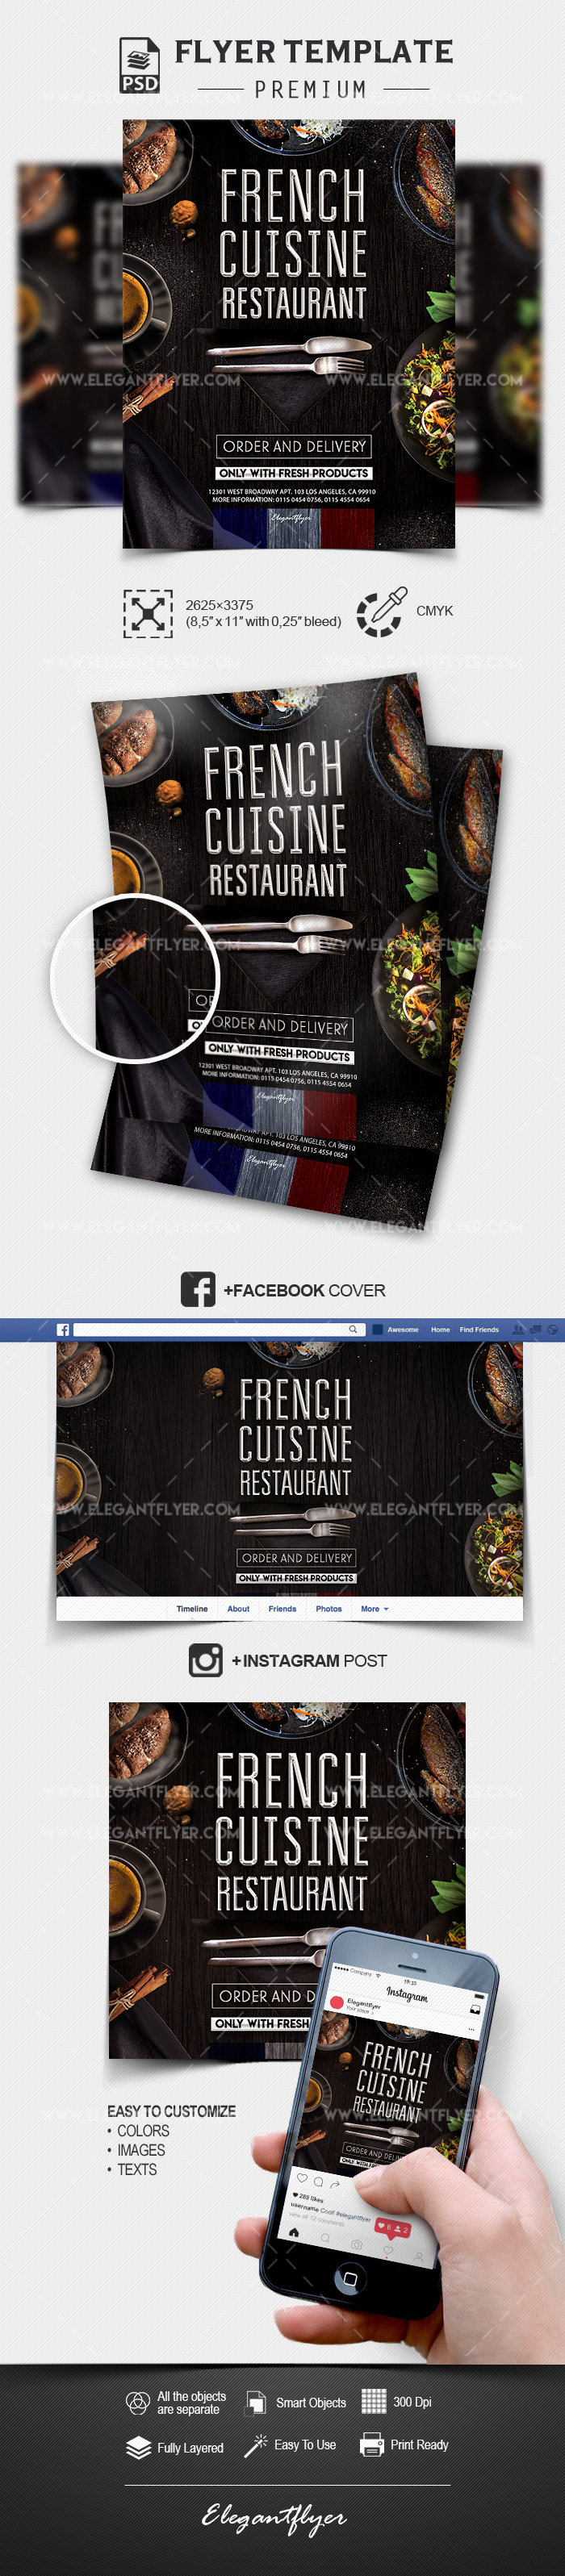 French Cuisine Restaurant – PSD Flyer Template + Facebook Cover + Instagram Post